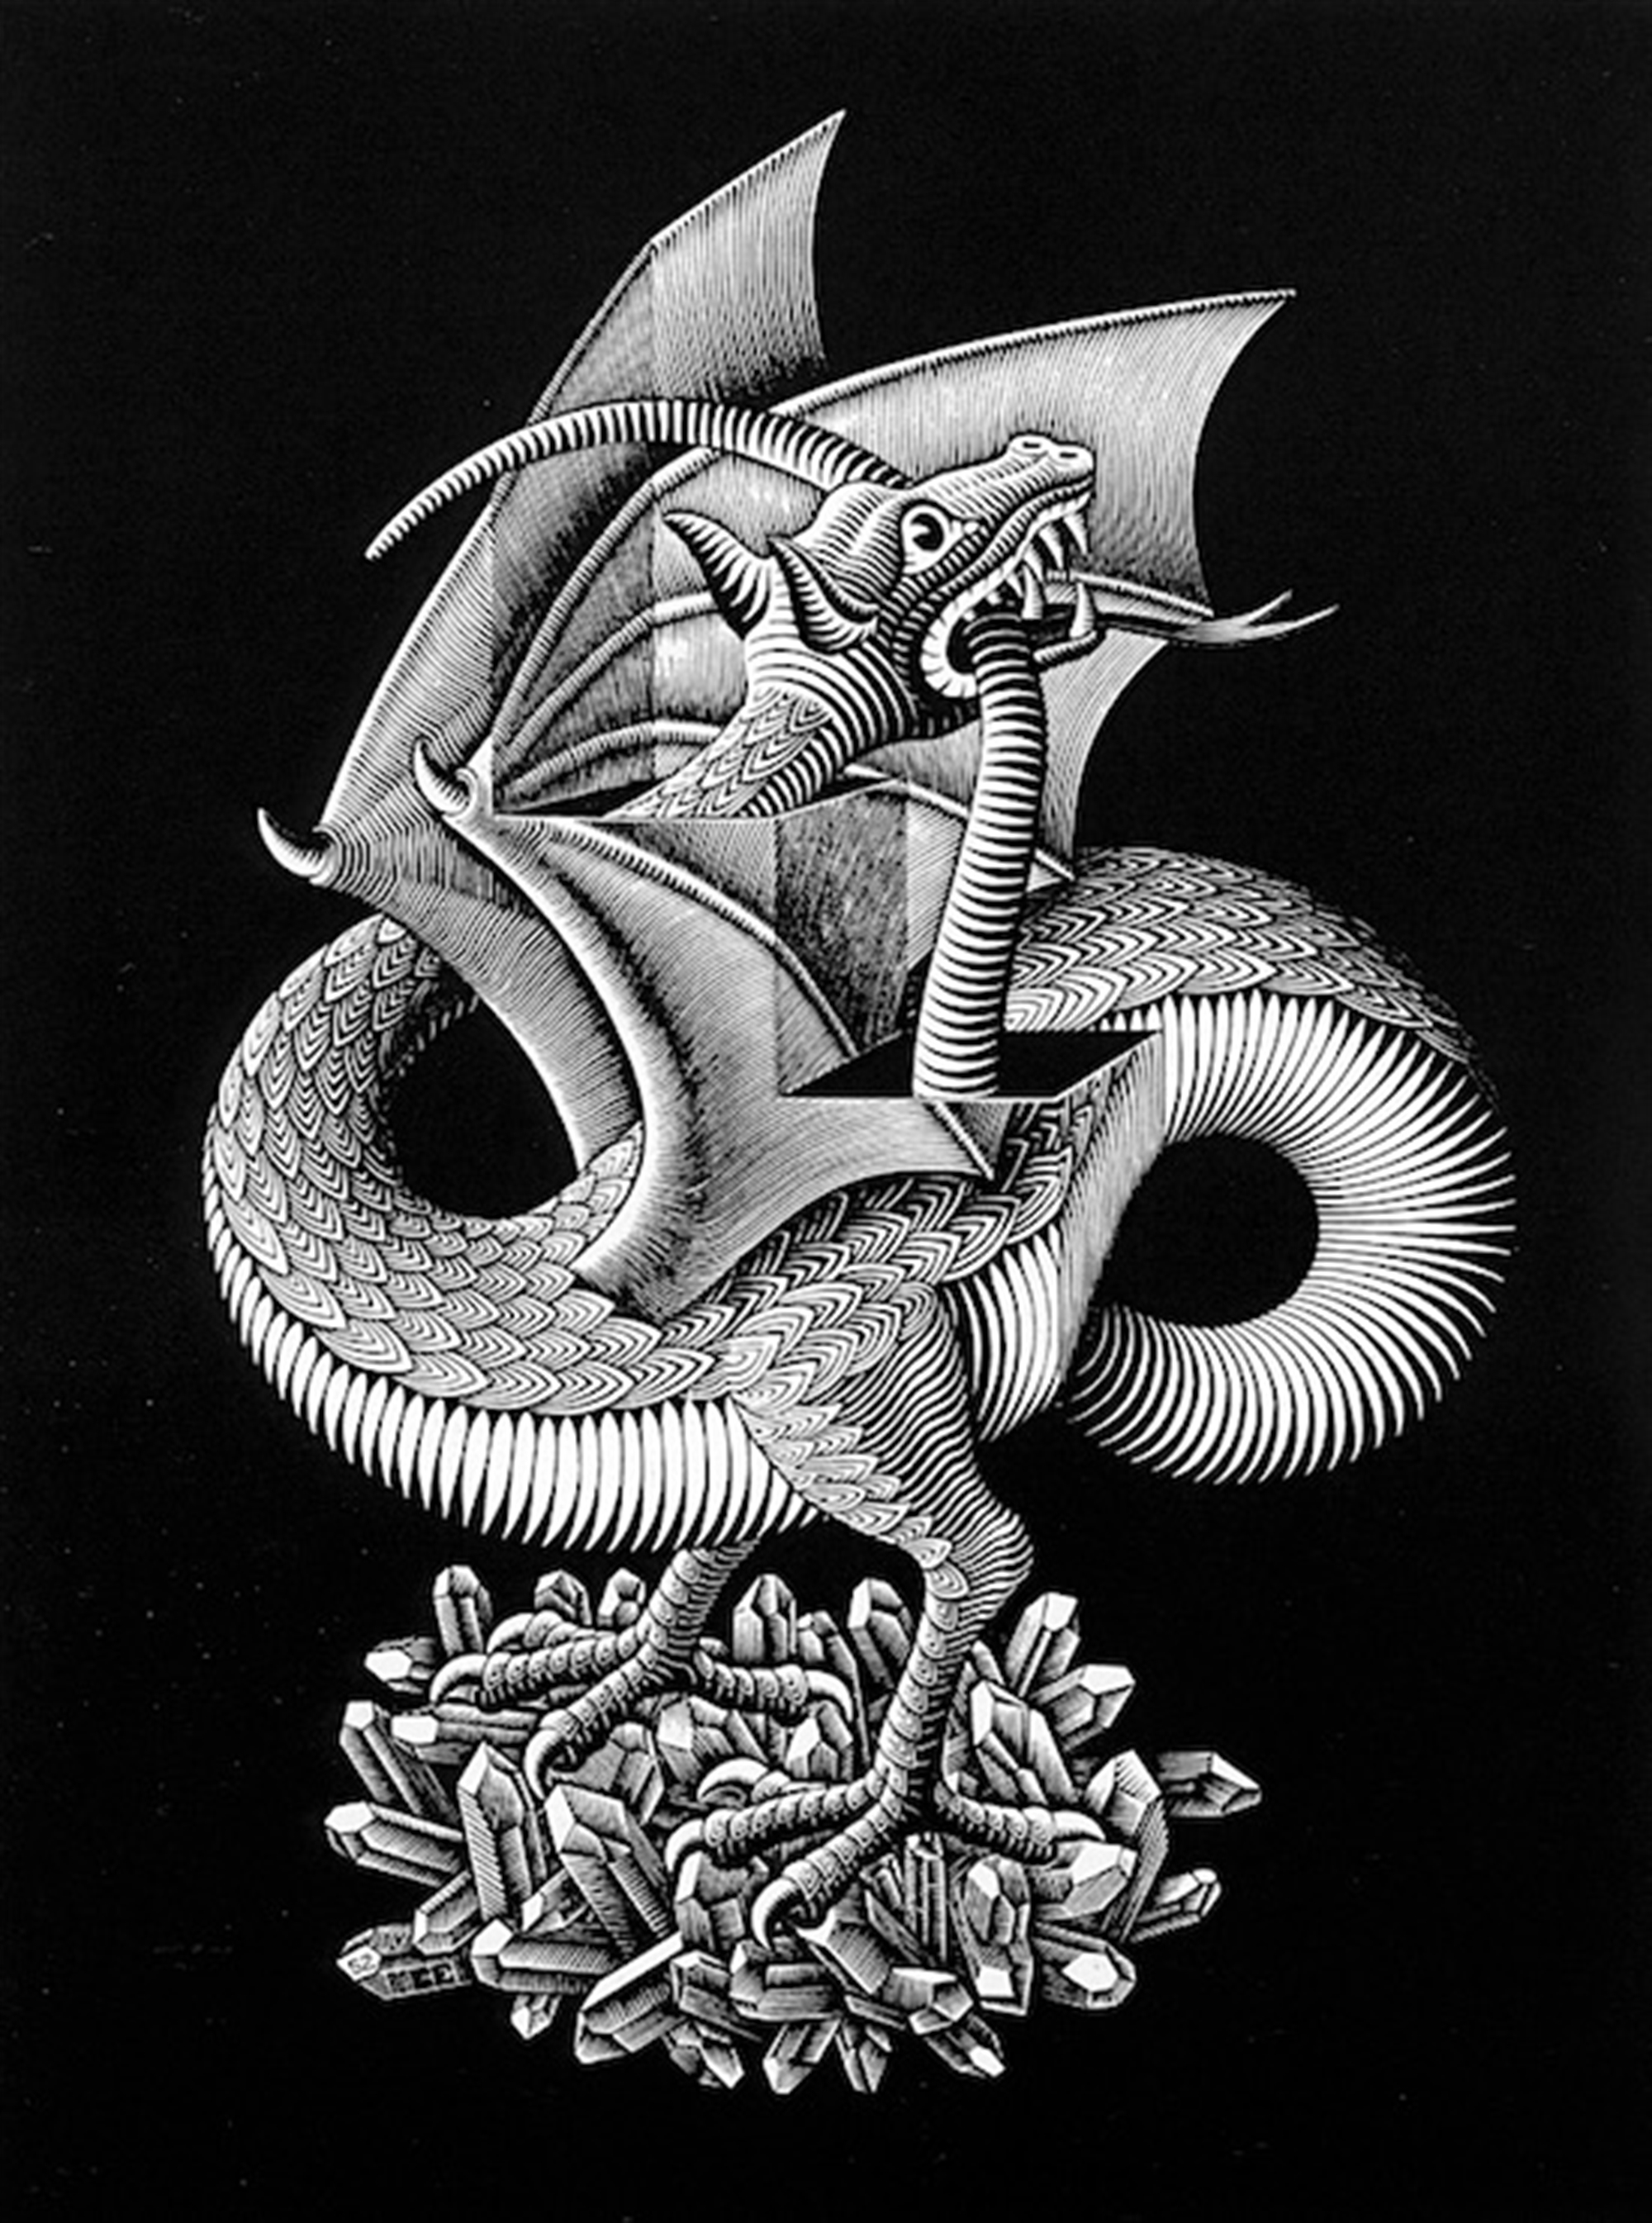 Dragon by M.C. Escher